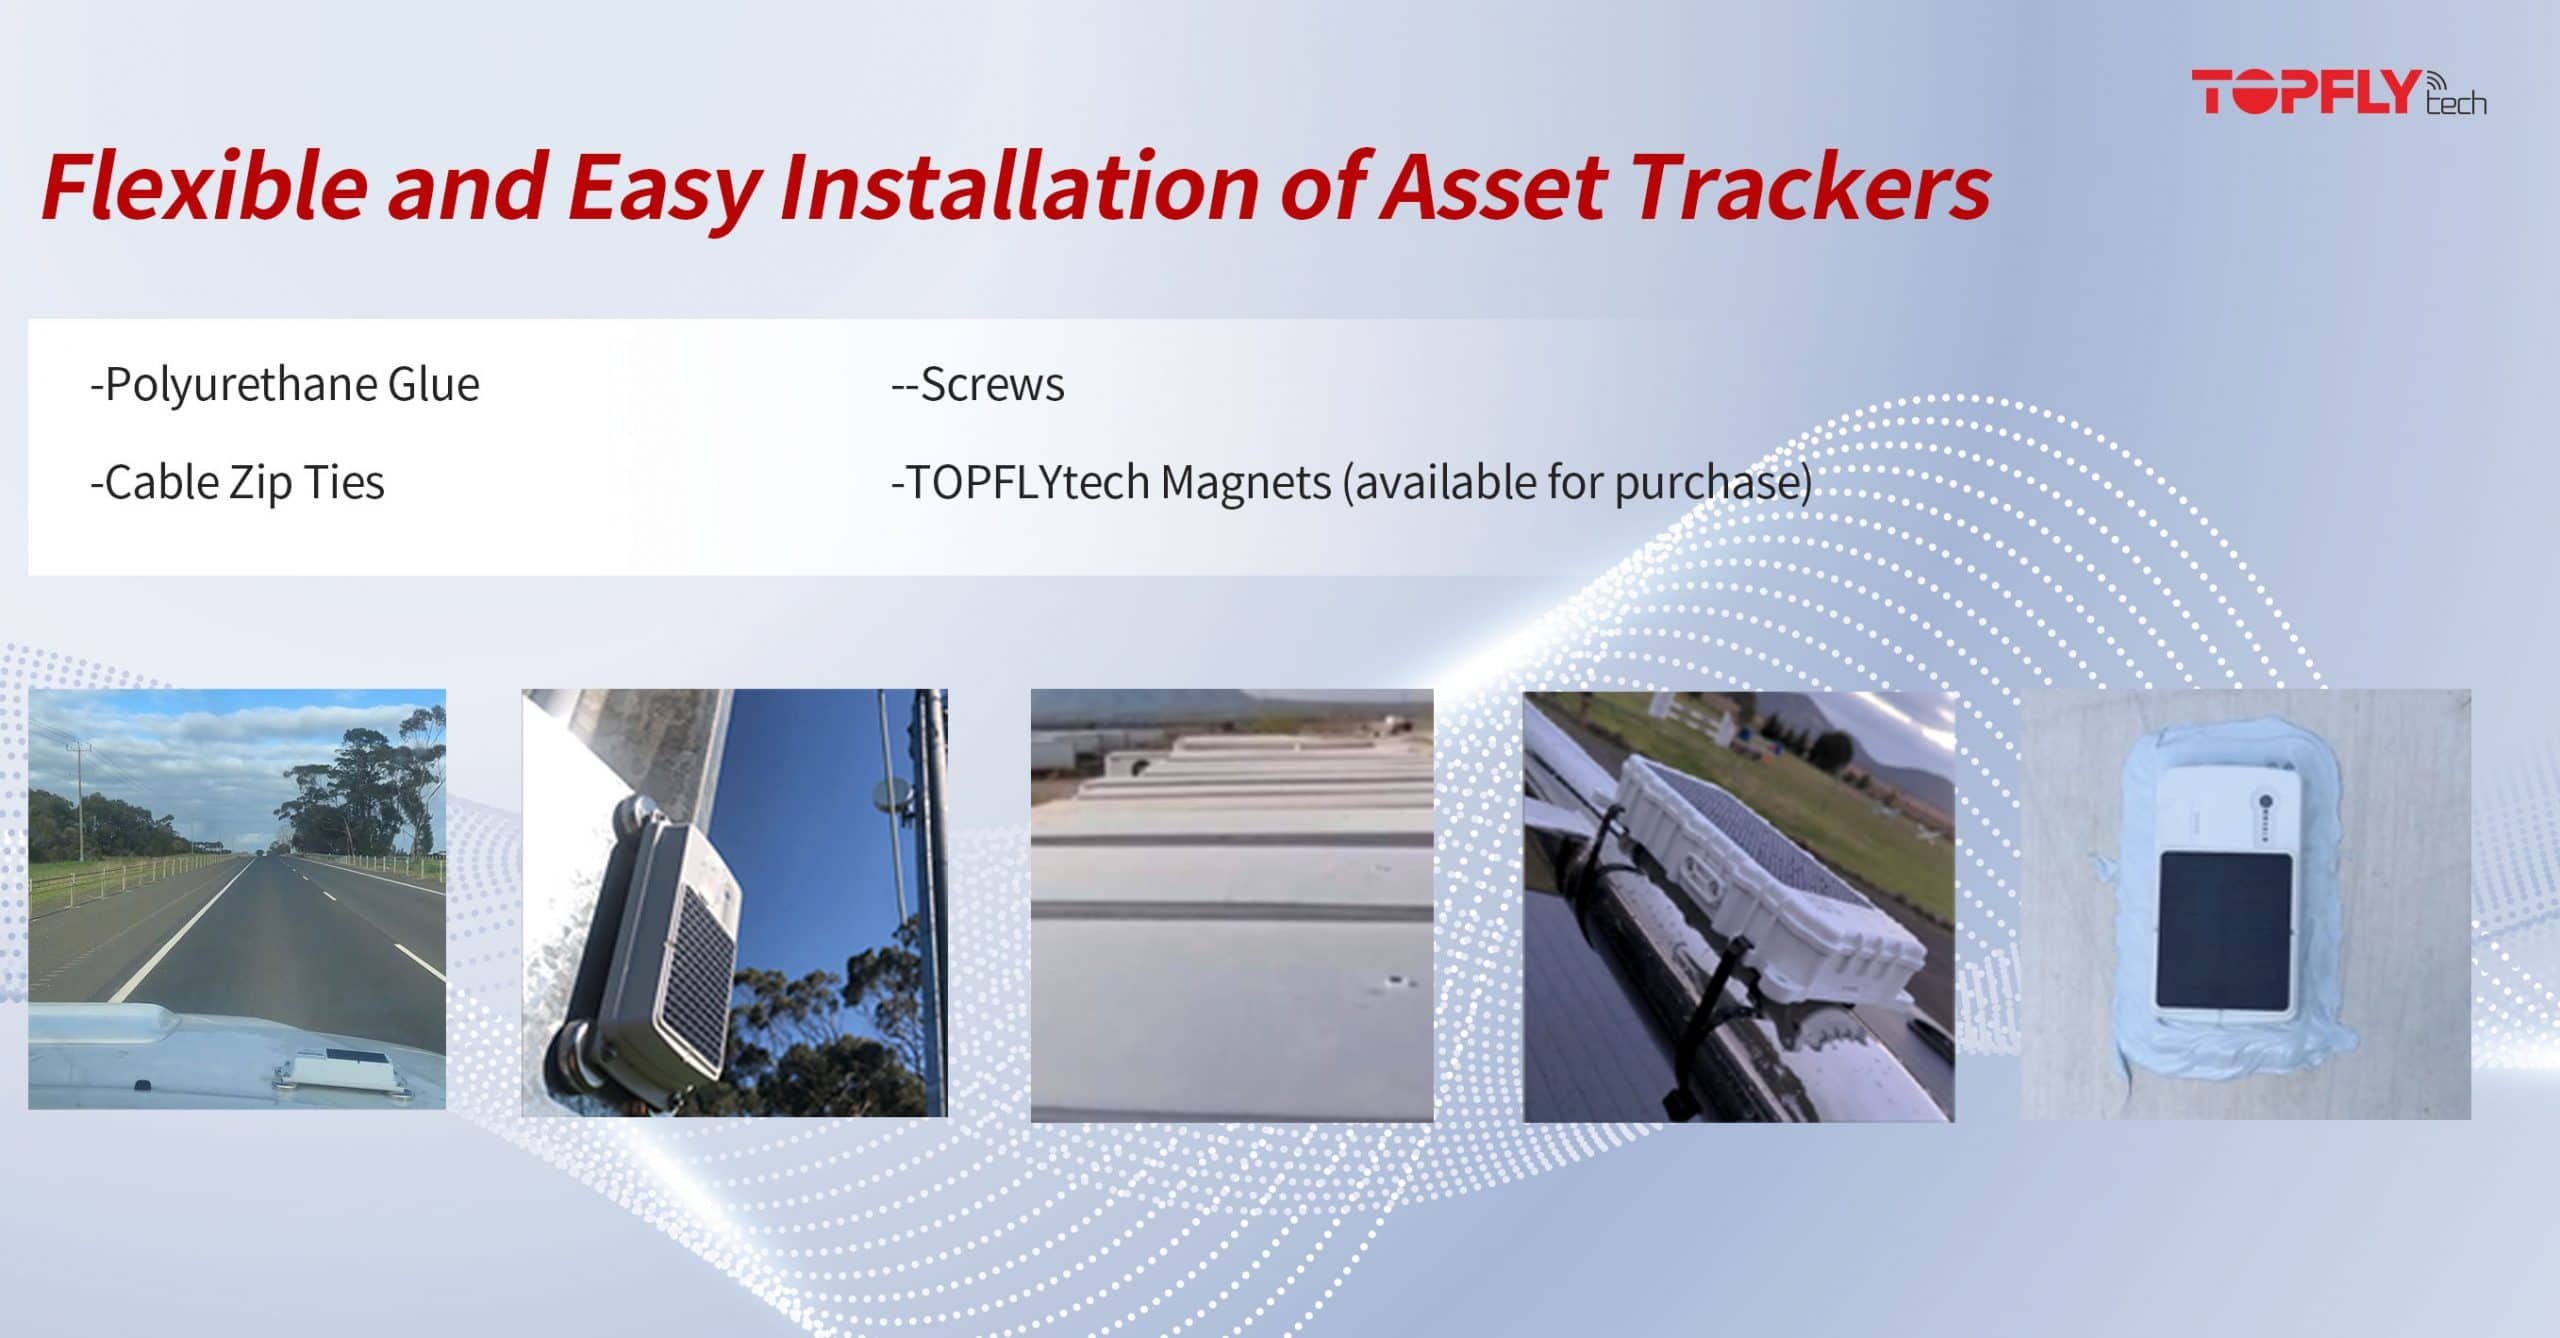 Flexible and Easy Installation of Asset Tracker